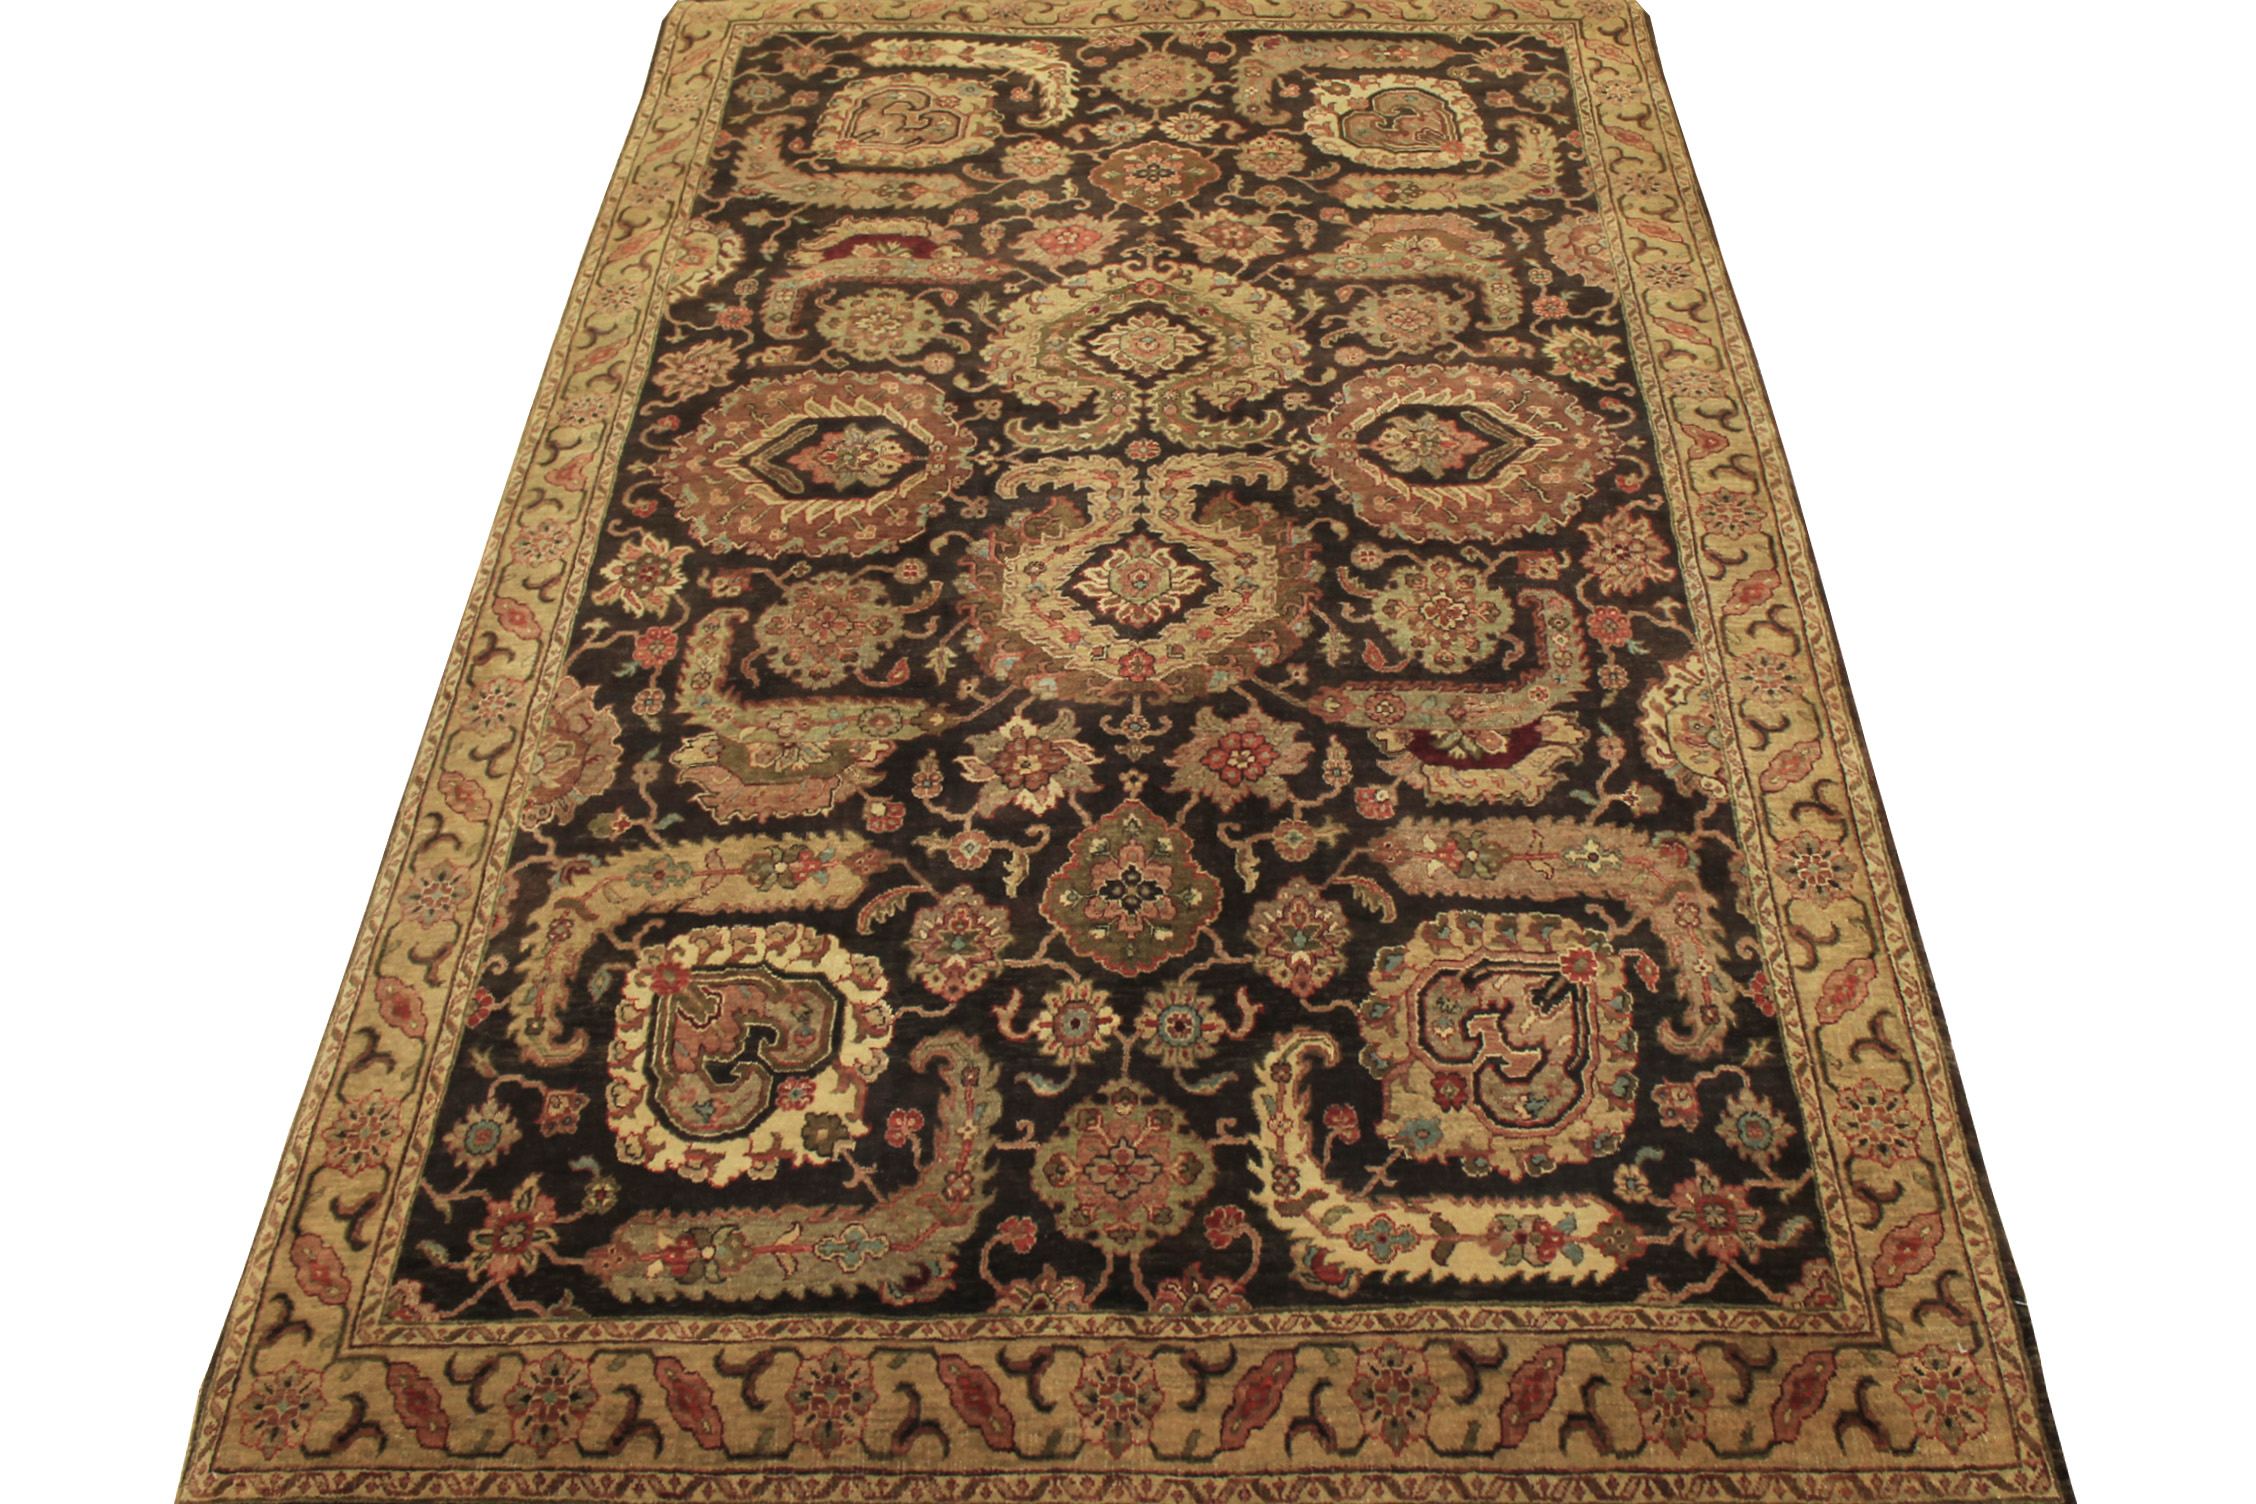 6x9 Antique Revival Hand Knotted Wool Area Rug - MR13425